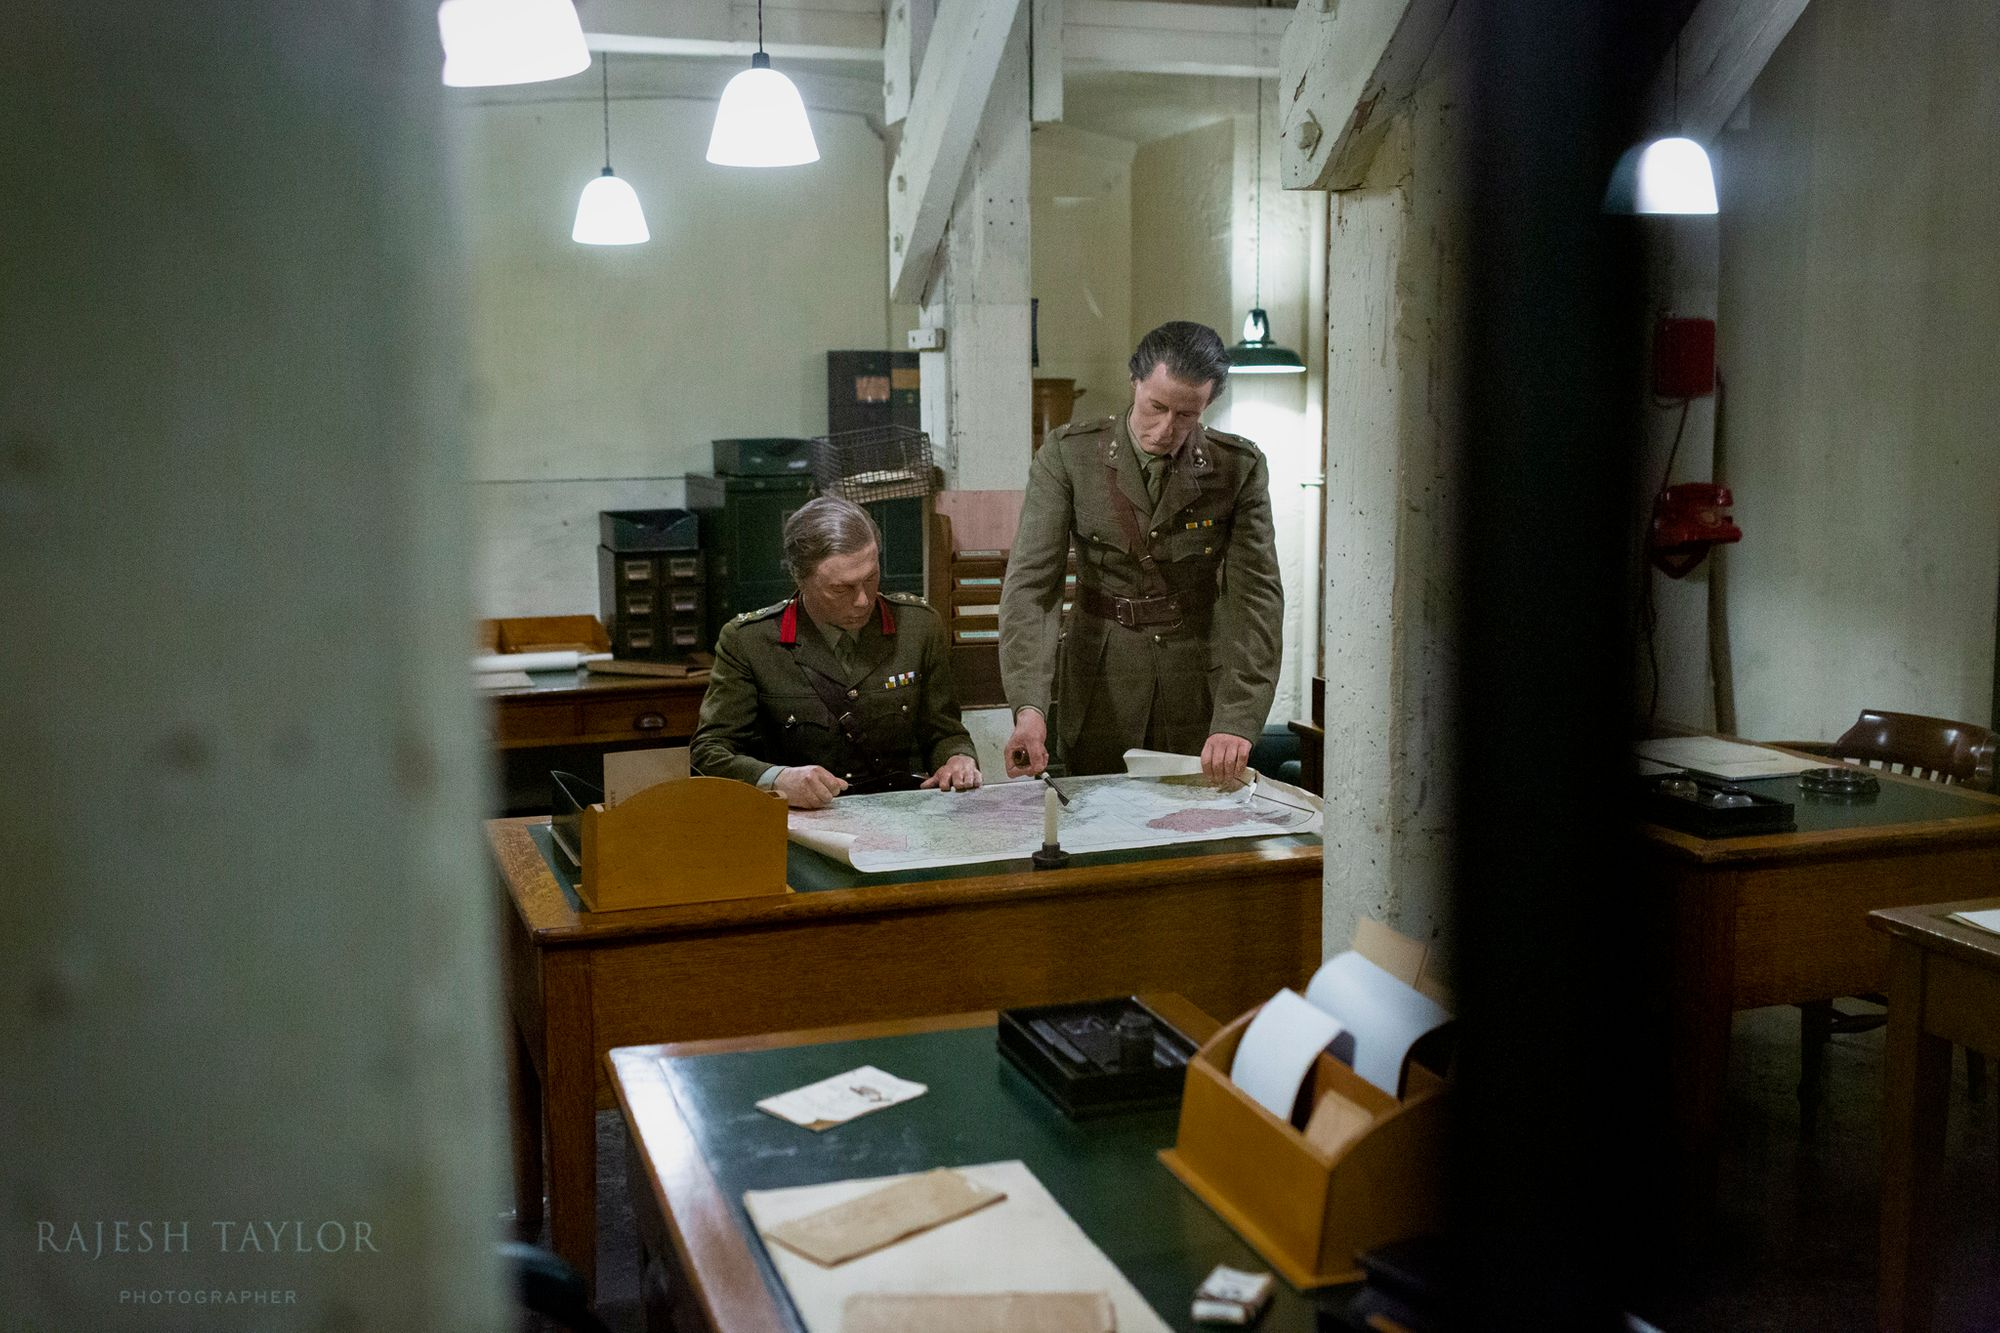 Churchill War Rooms © Rajesh Taylor